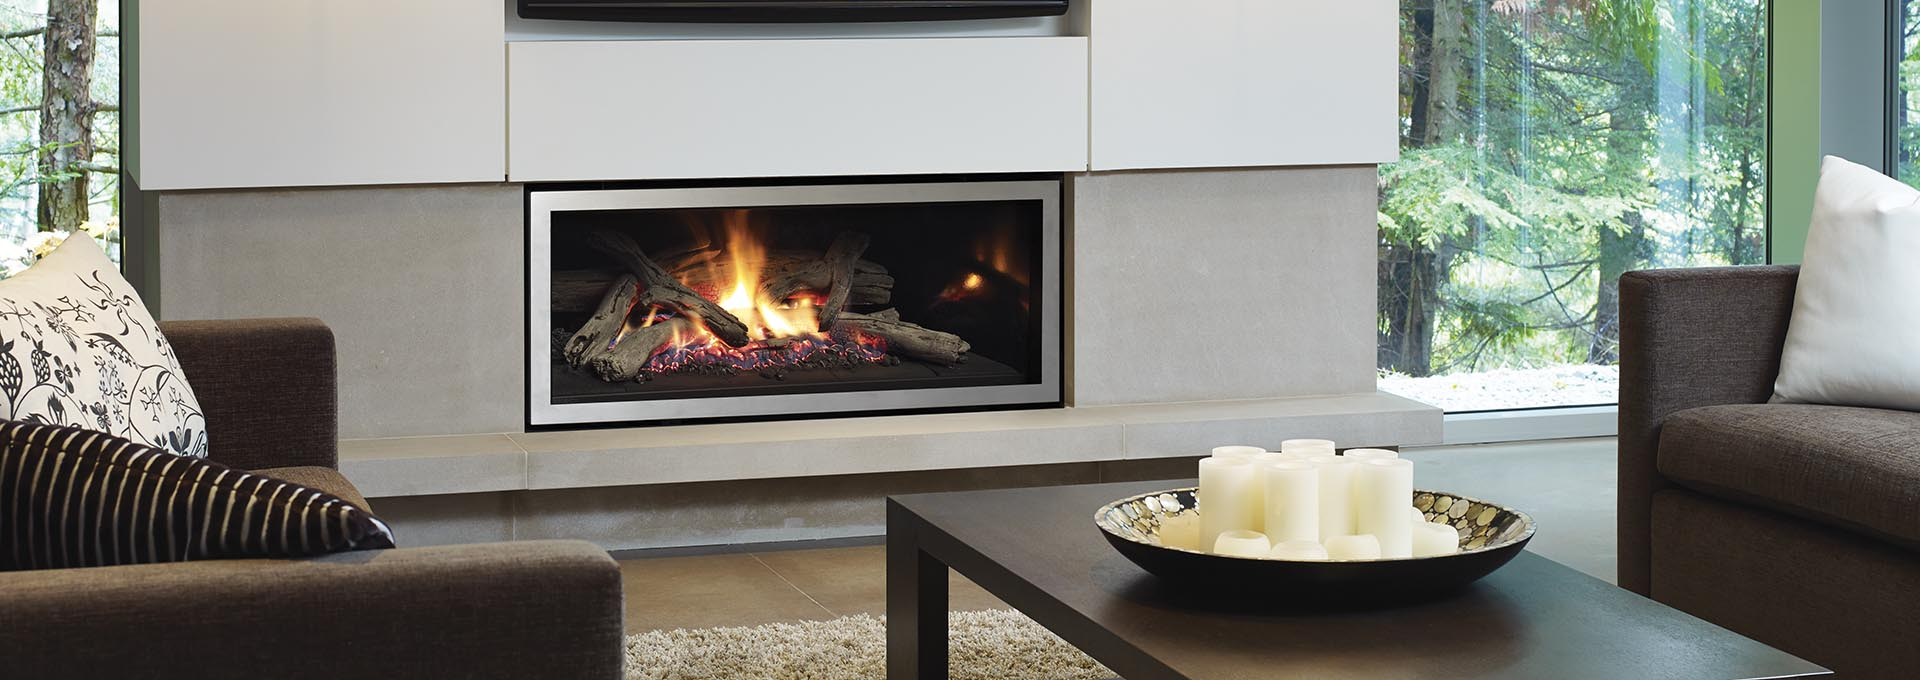 Modern Gas Fireplace Simple And Decorative Modern Gas